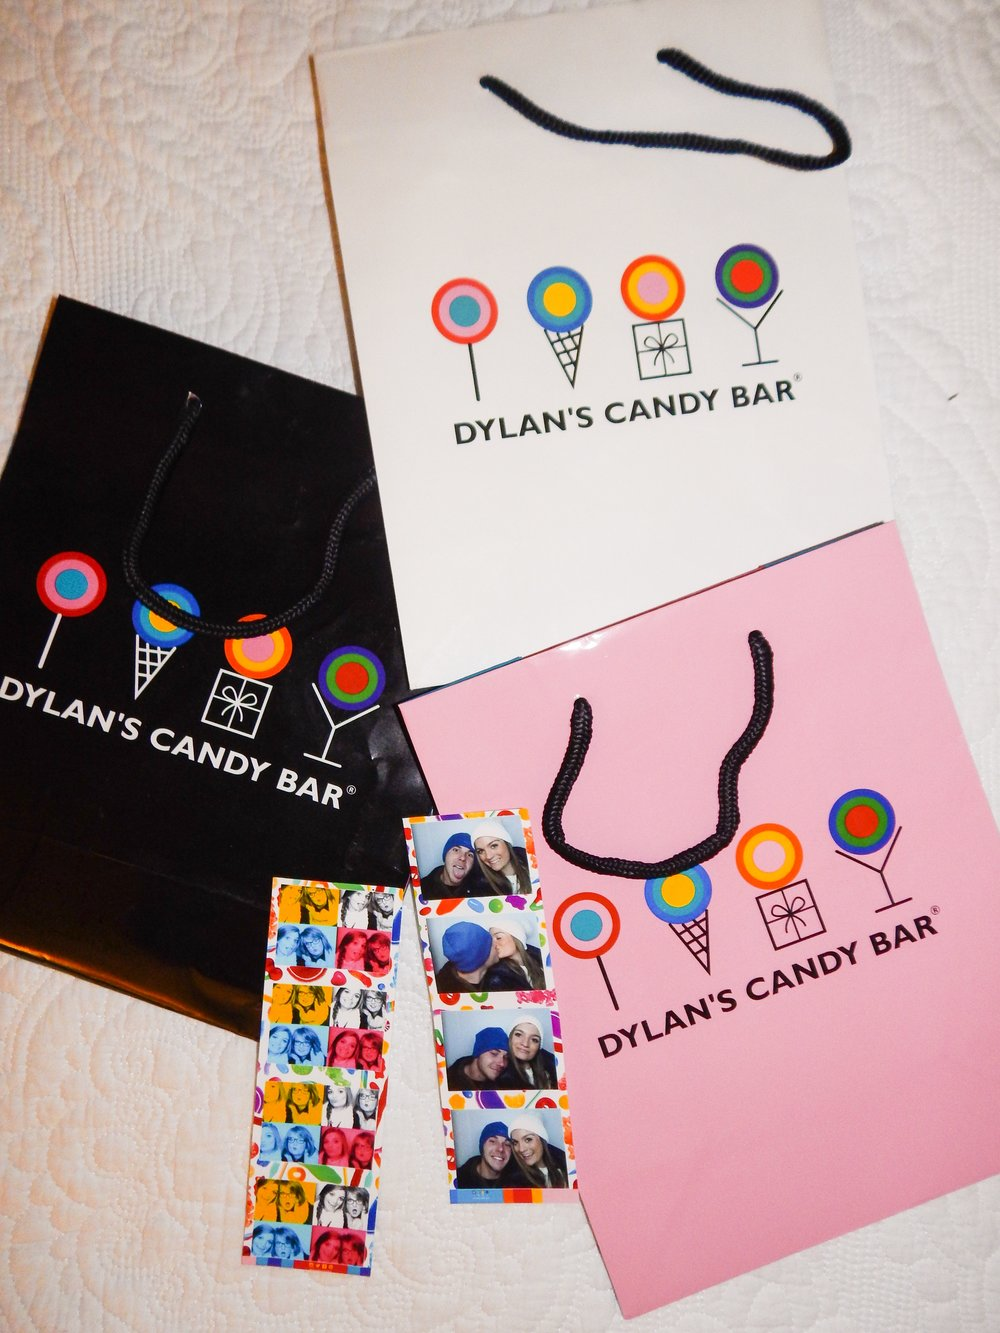 i love to collect shopping bags over time from my favorite stores! i think it is so fun that dylan's candy bar changes the color of their bags from time to time!